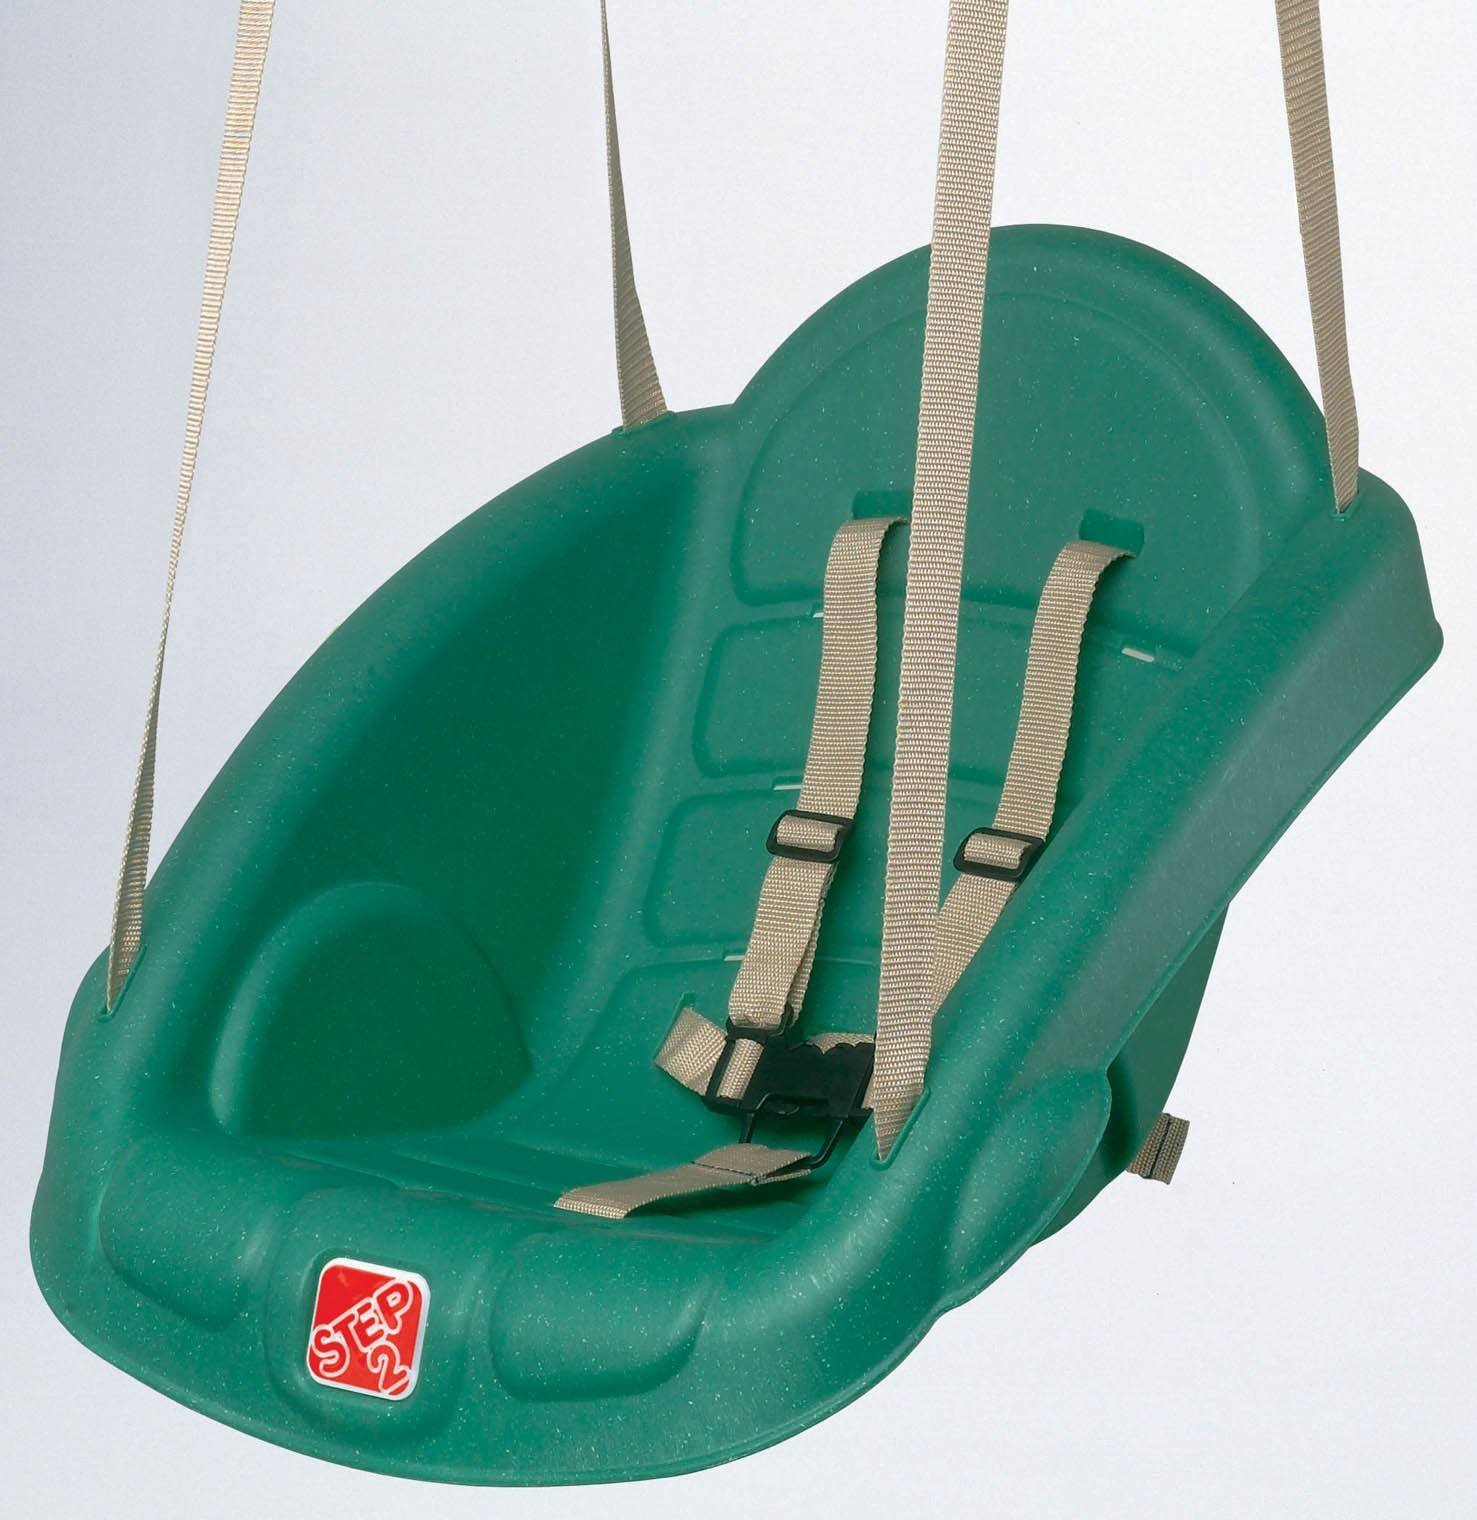 CPSC The Step 2 Co Announce Recall to Repair Toddler Swings